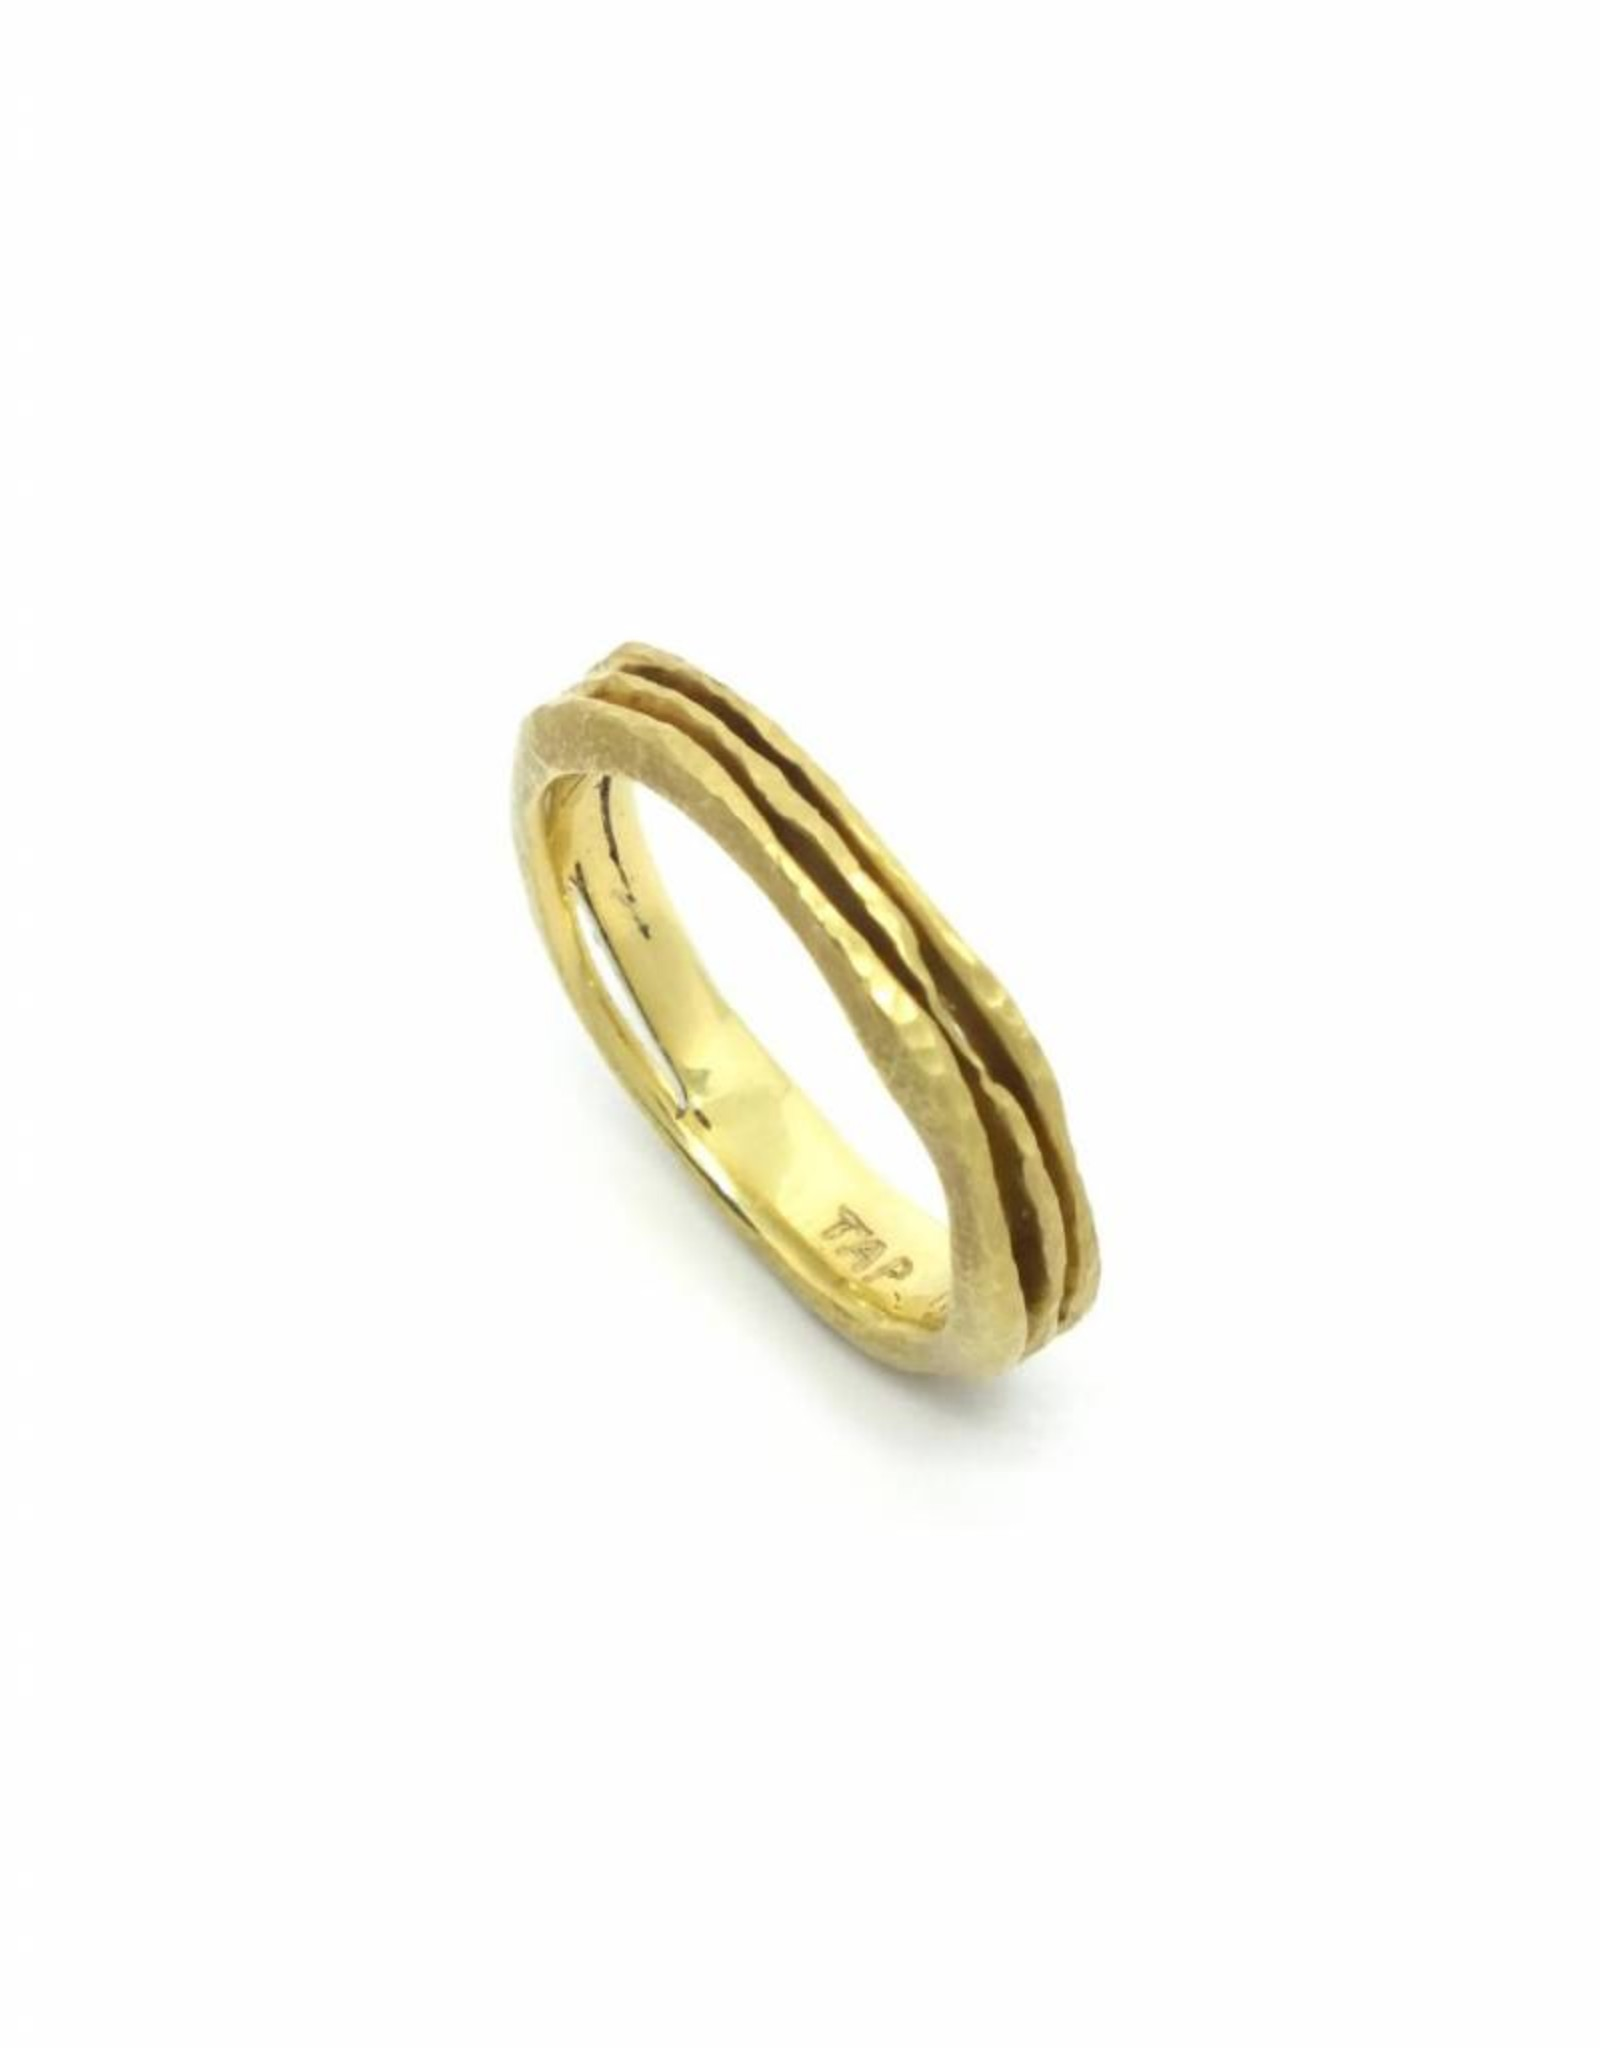 TAP by Todd Pownell Gold Wavy Ring with 3 Rows